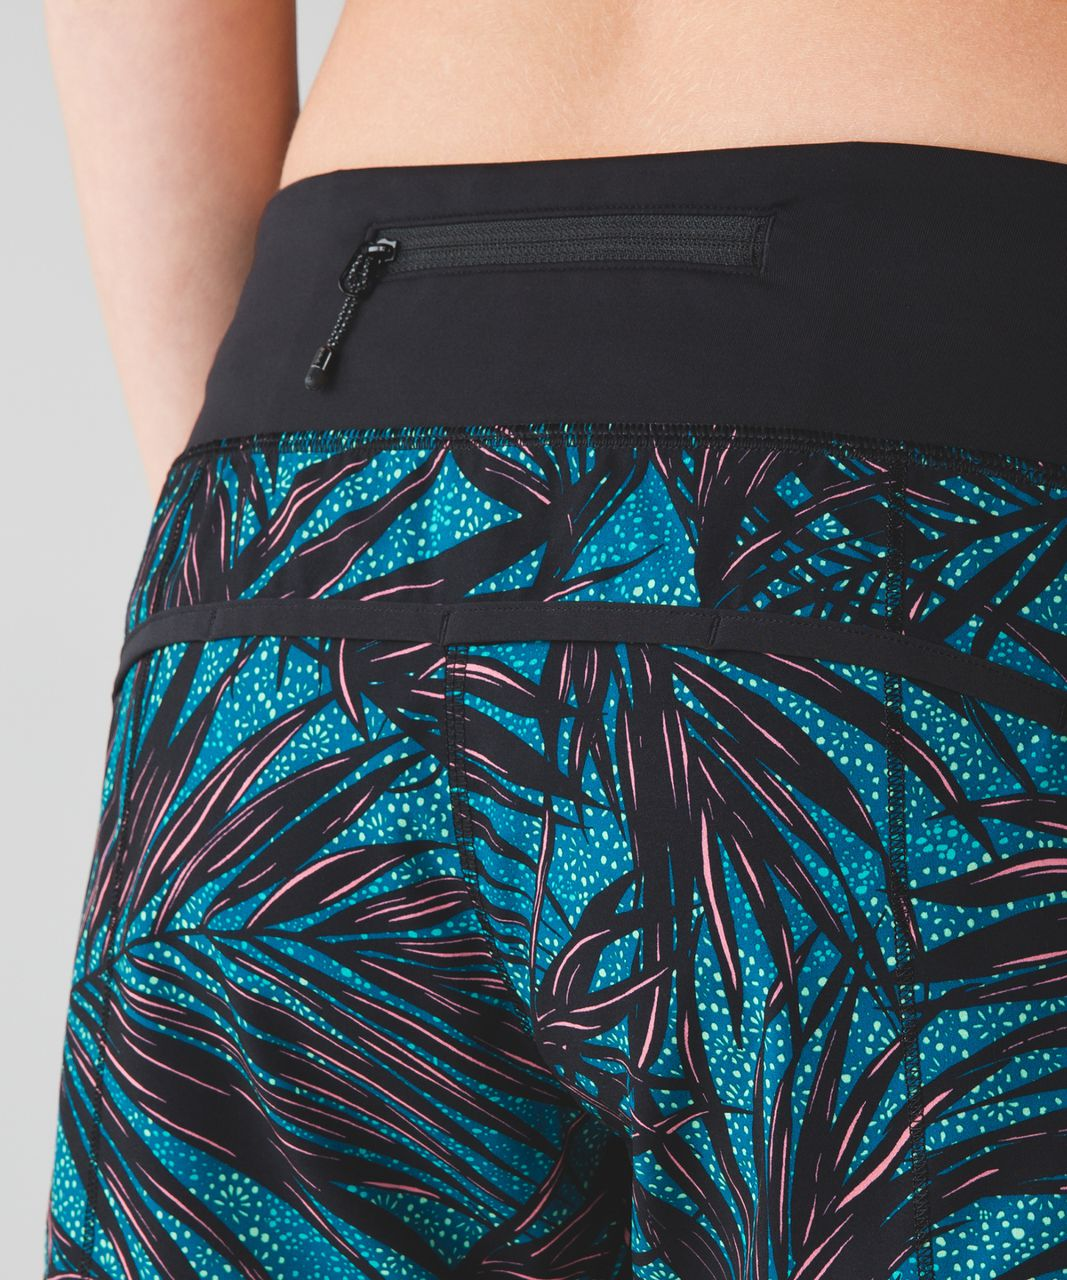 Lululemon Speed Short - Palm Lace Tofino Teal Multi / Black